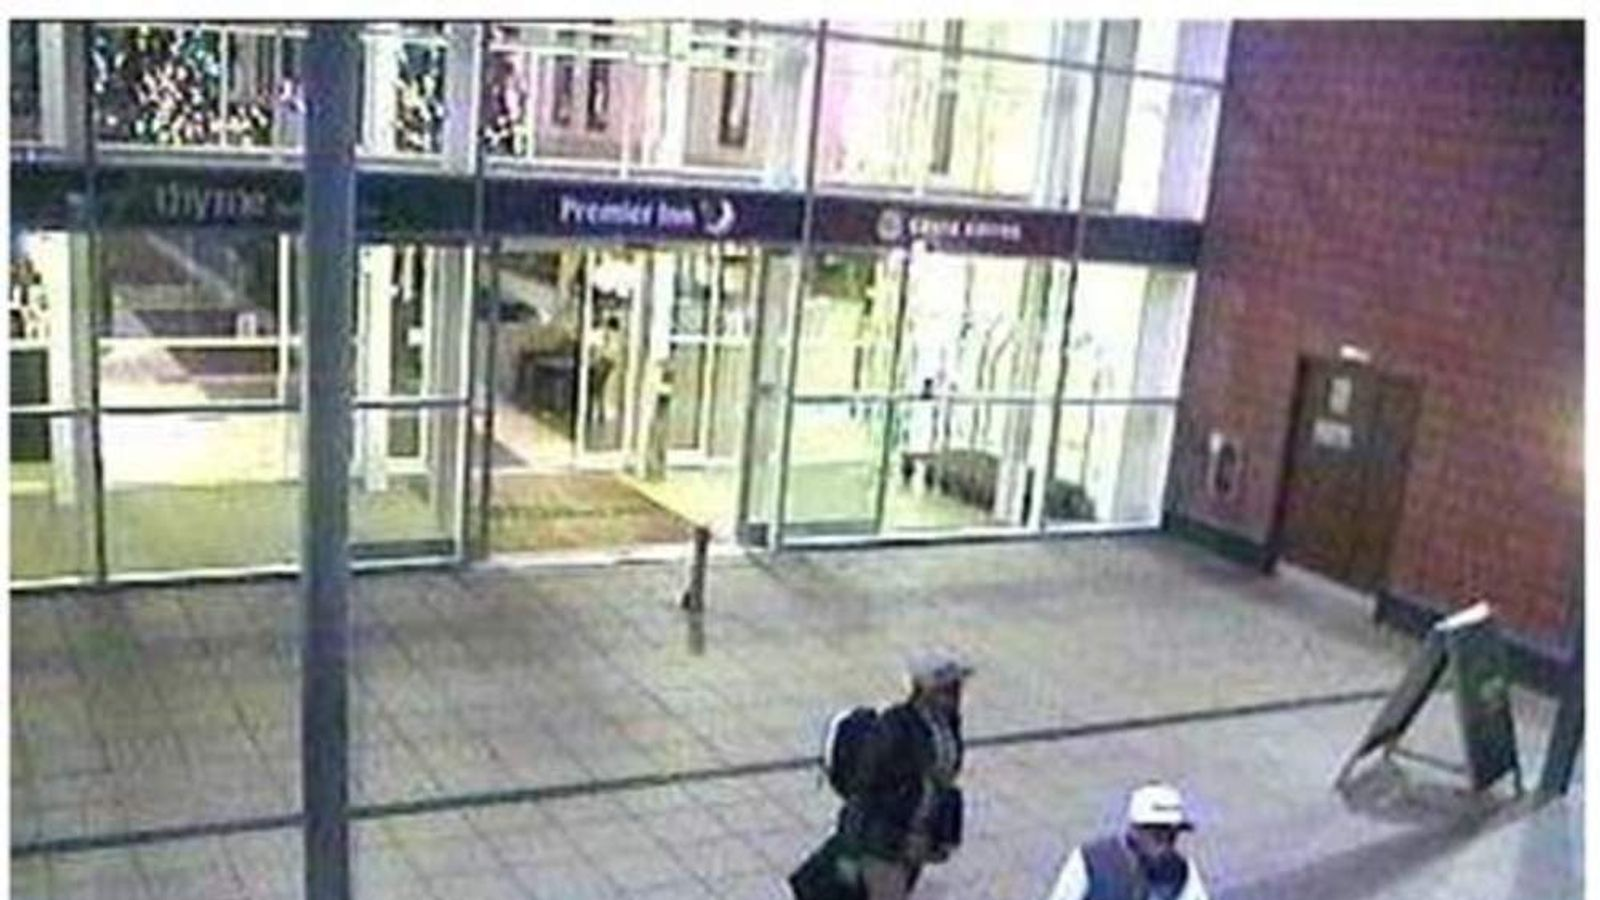 Birmingham pair plead guilty to Syria terrorism offences